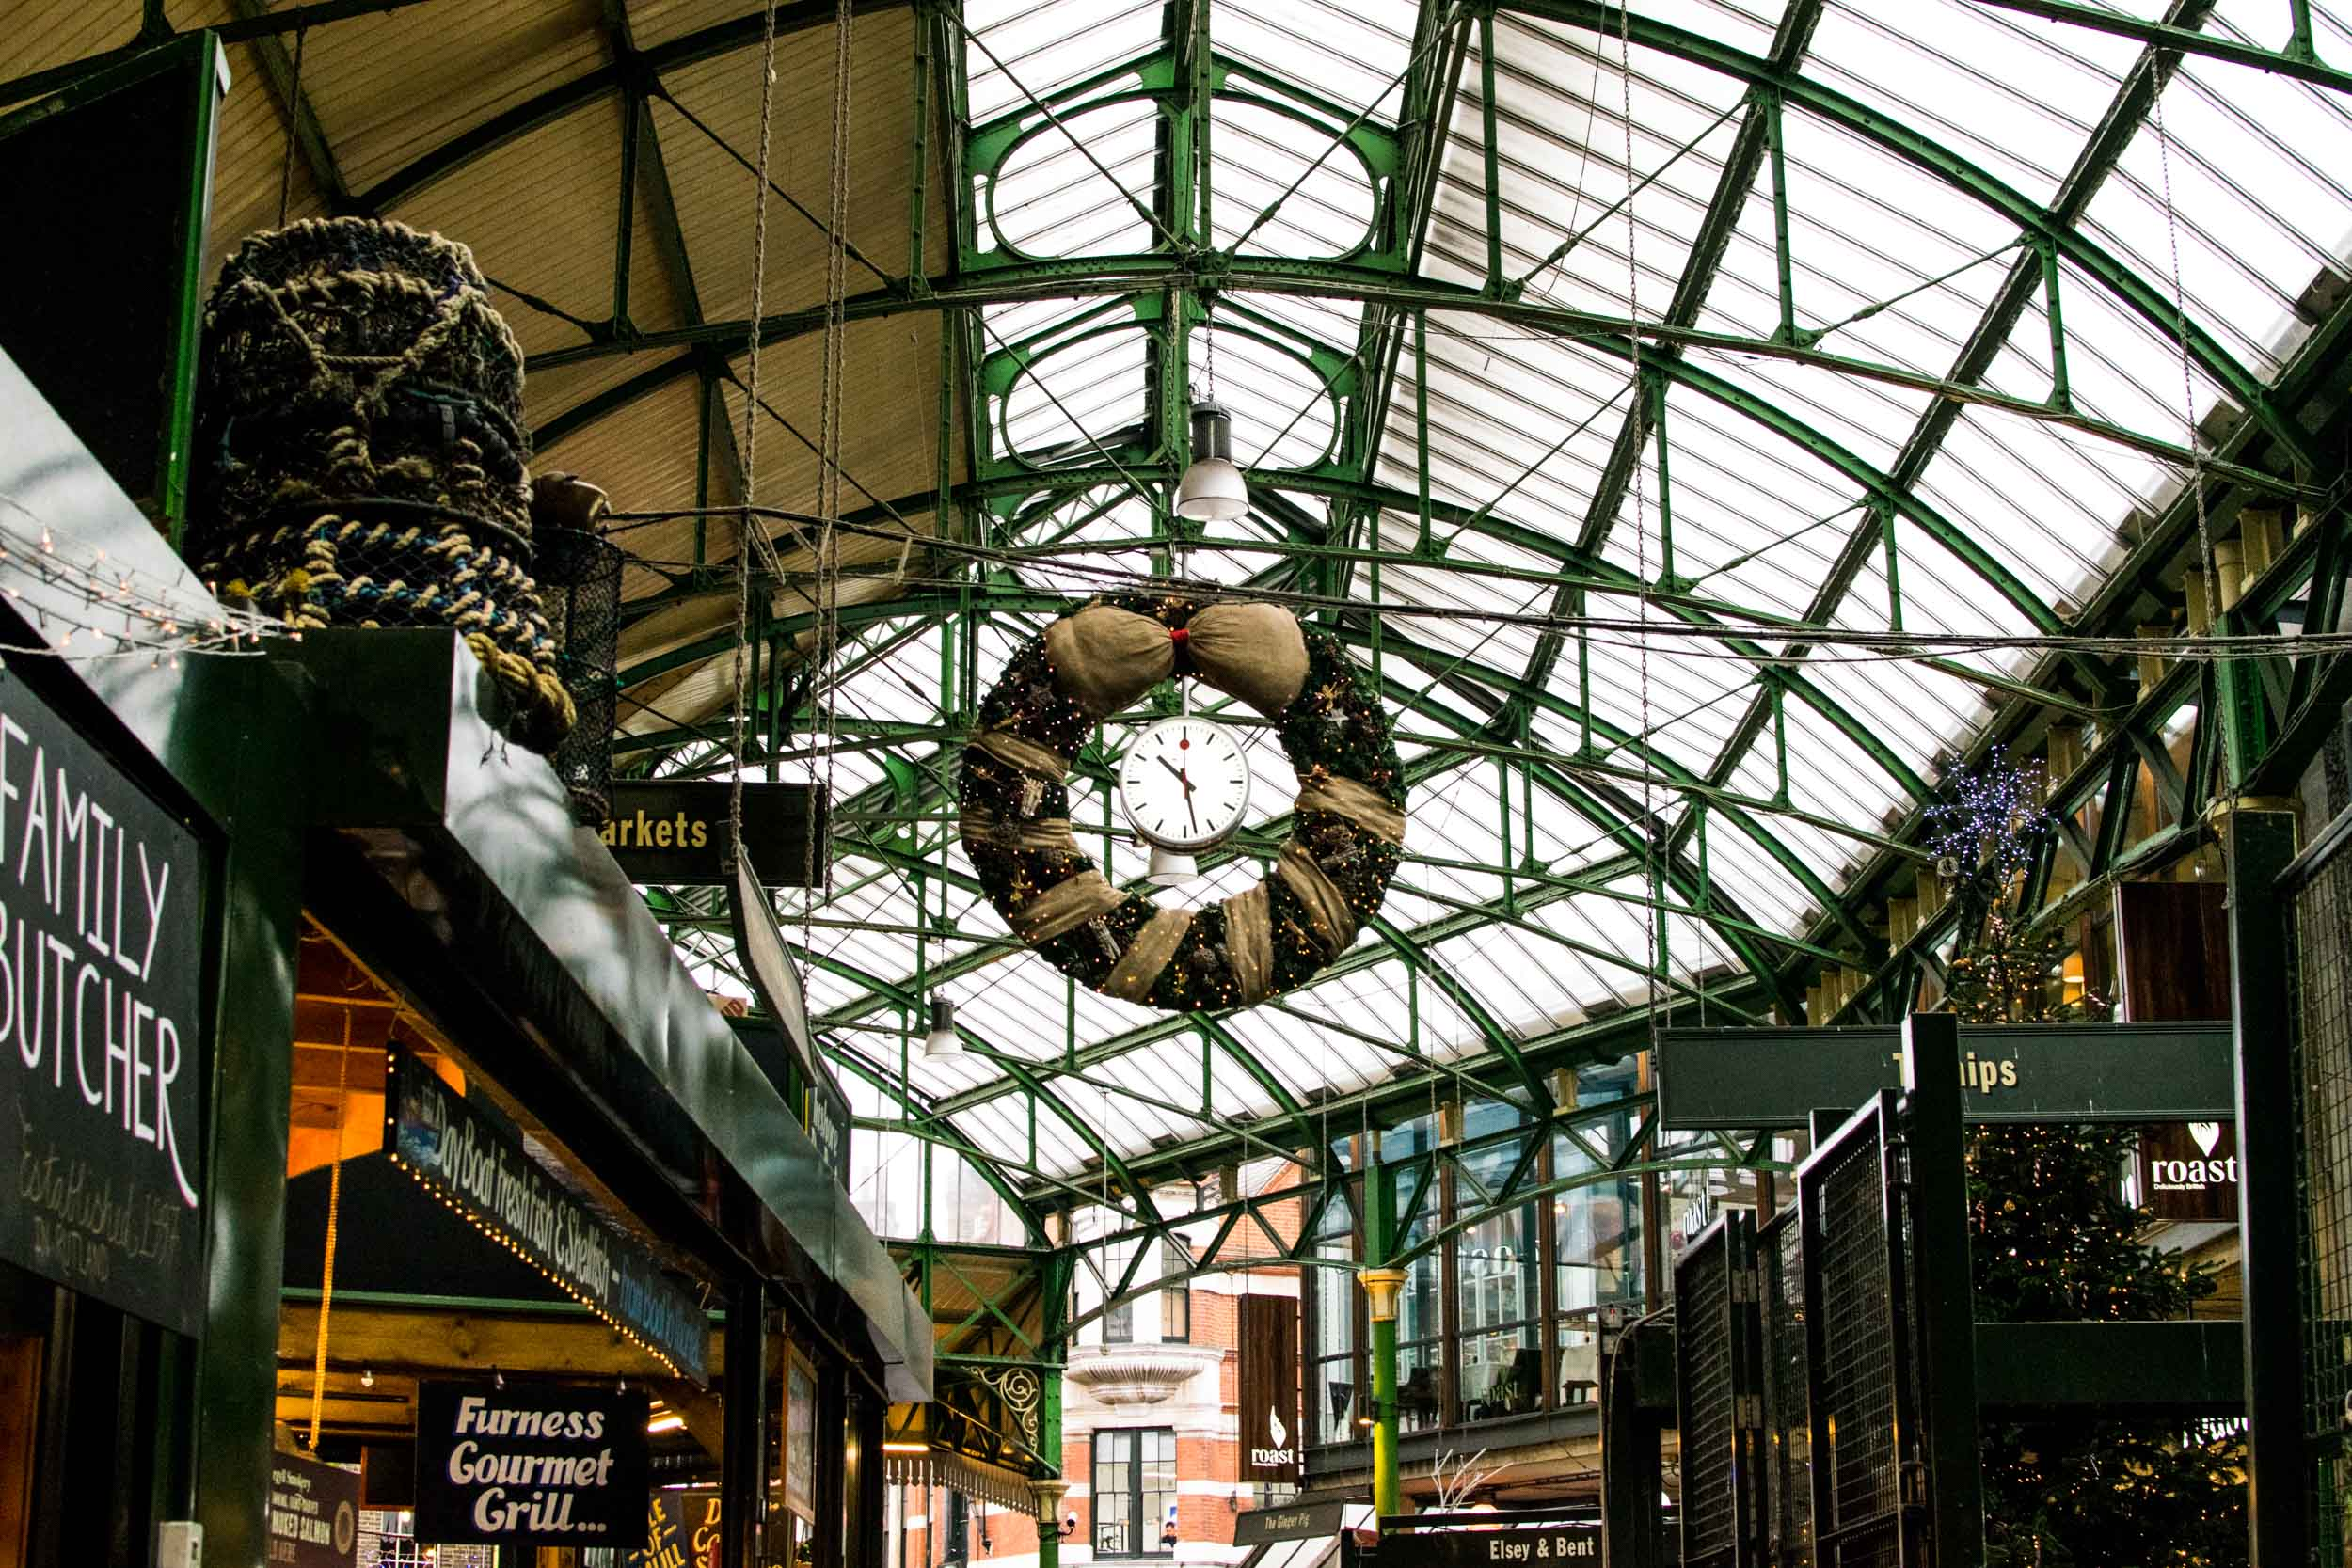 Inside Borough Market, London's oldest market with food stalls, clock and Christmas decorations.